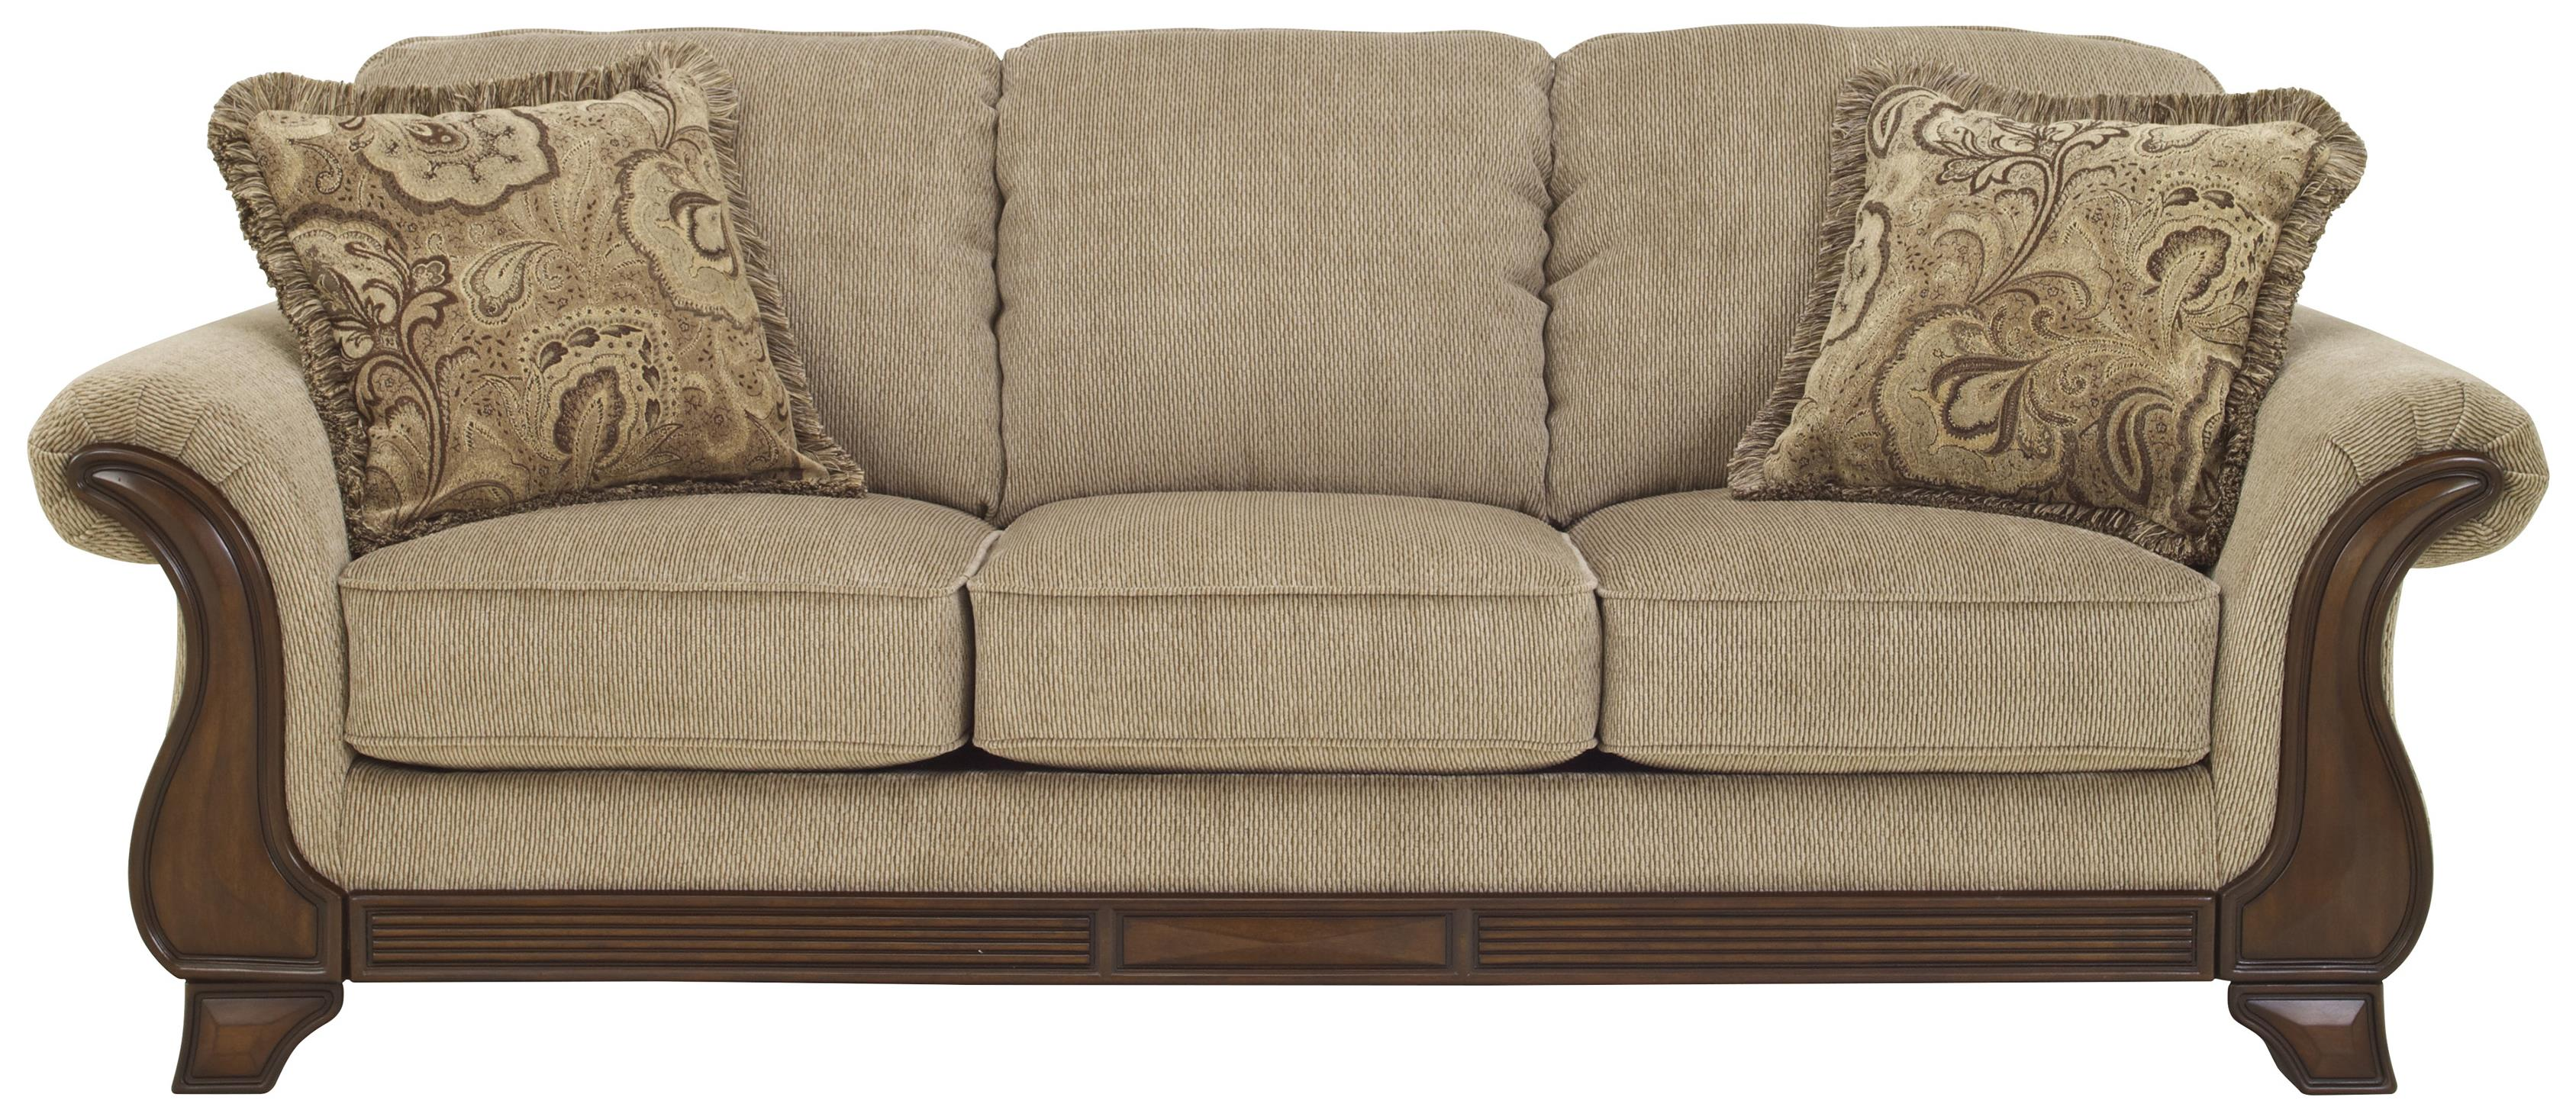 Lanett Sofa by Signature at Walker's Furniture